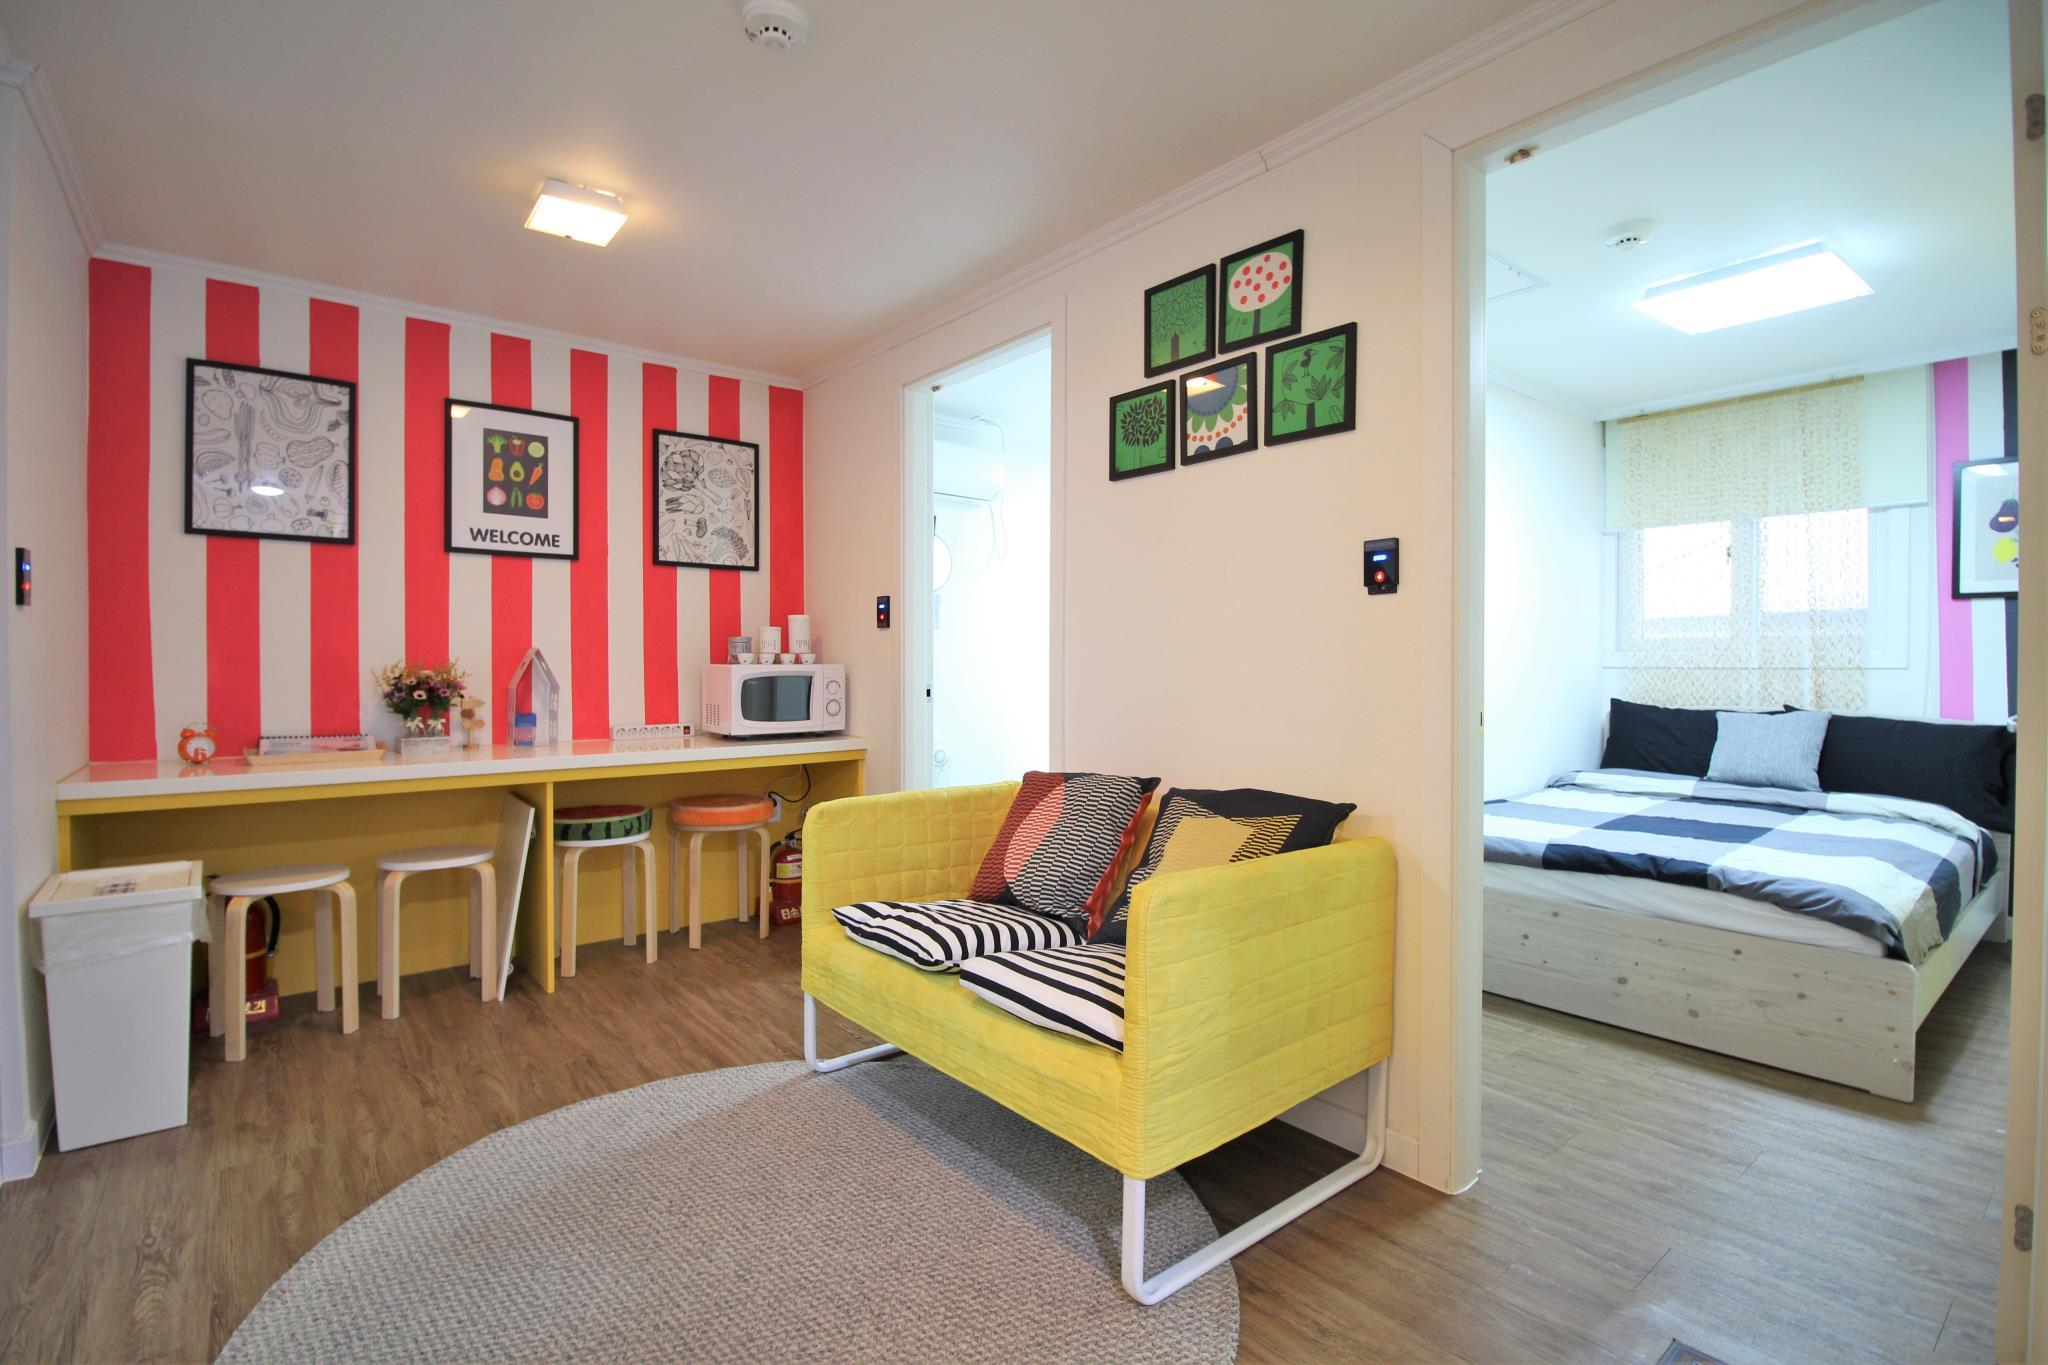 202 House Seoulstation Best Price On Njoy Guest House Foreign Only In Seoul Reviews